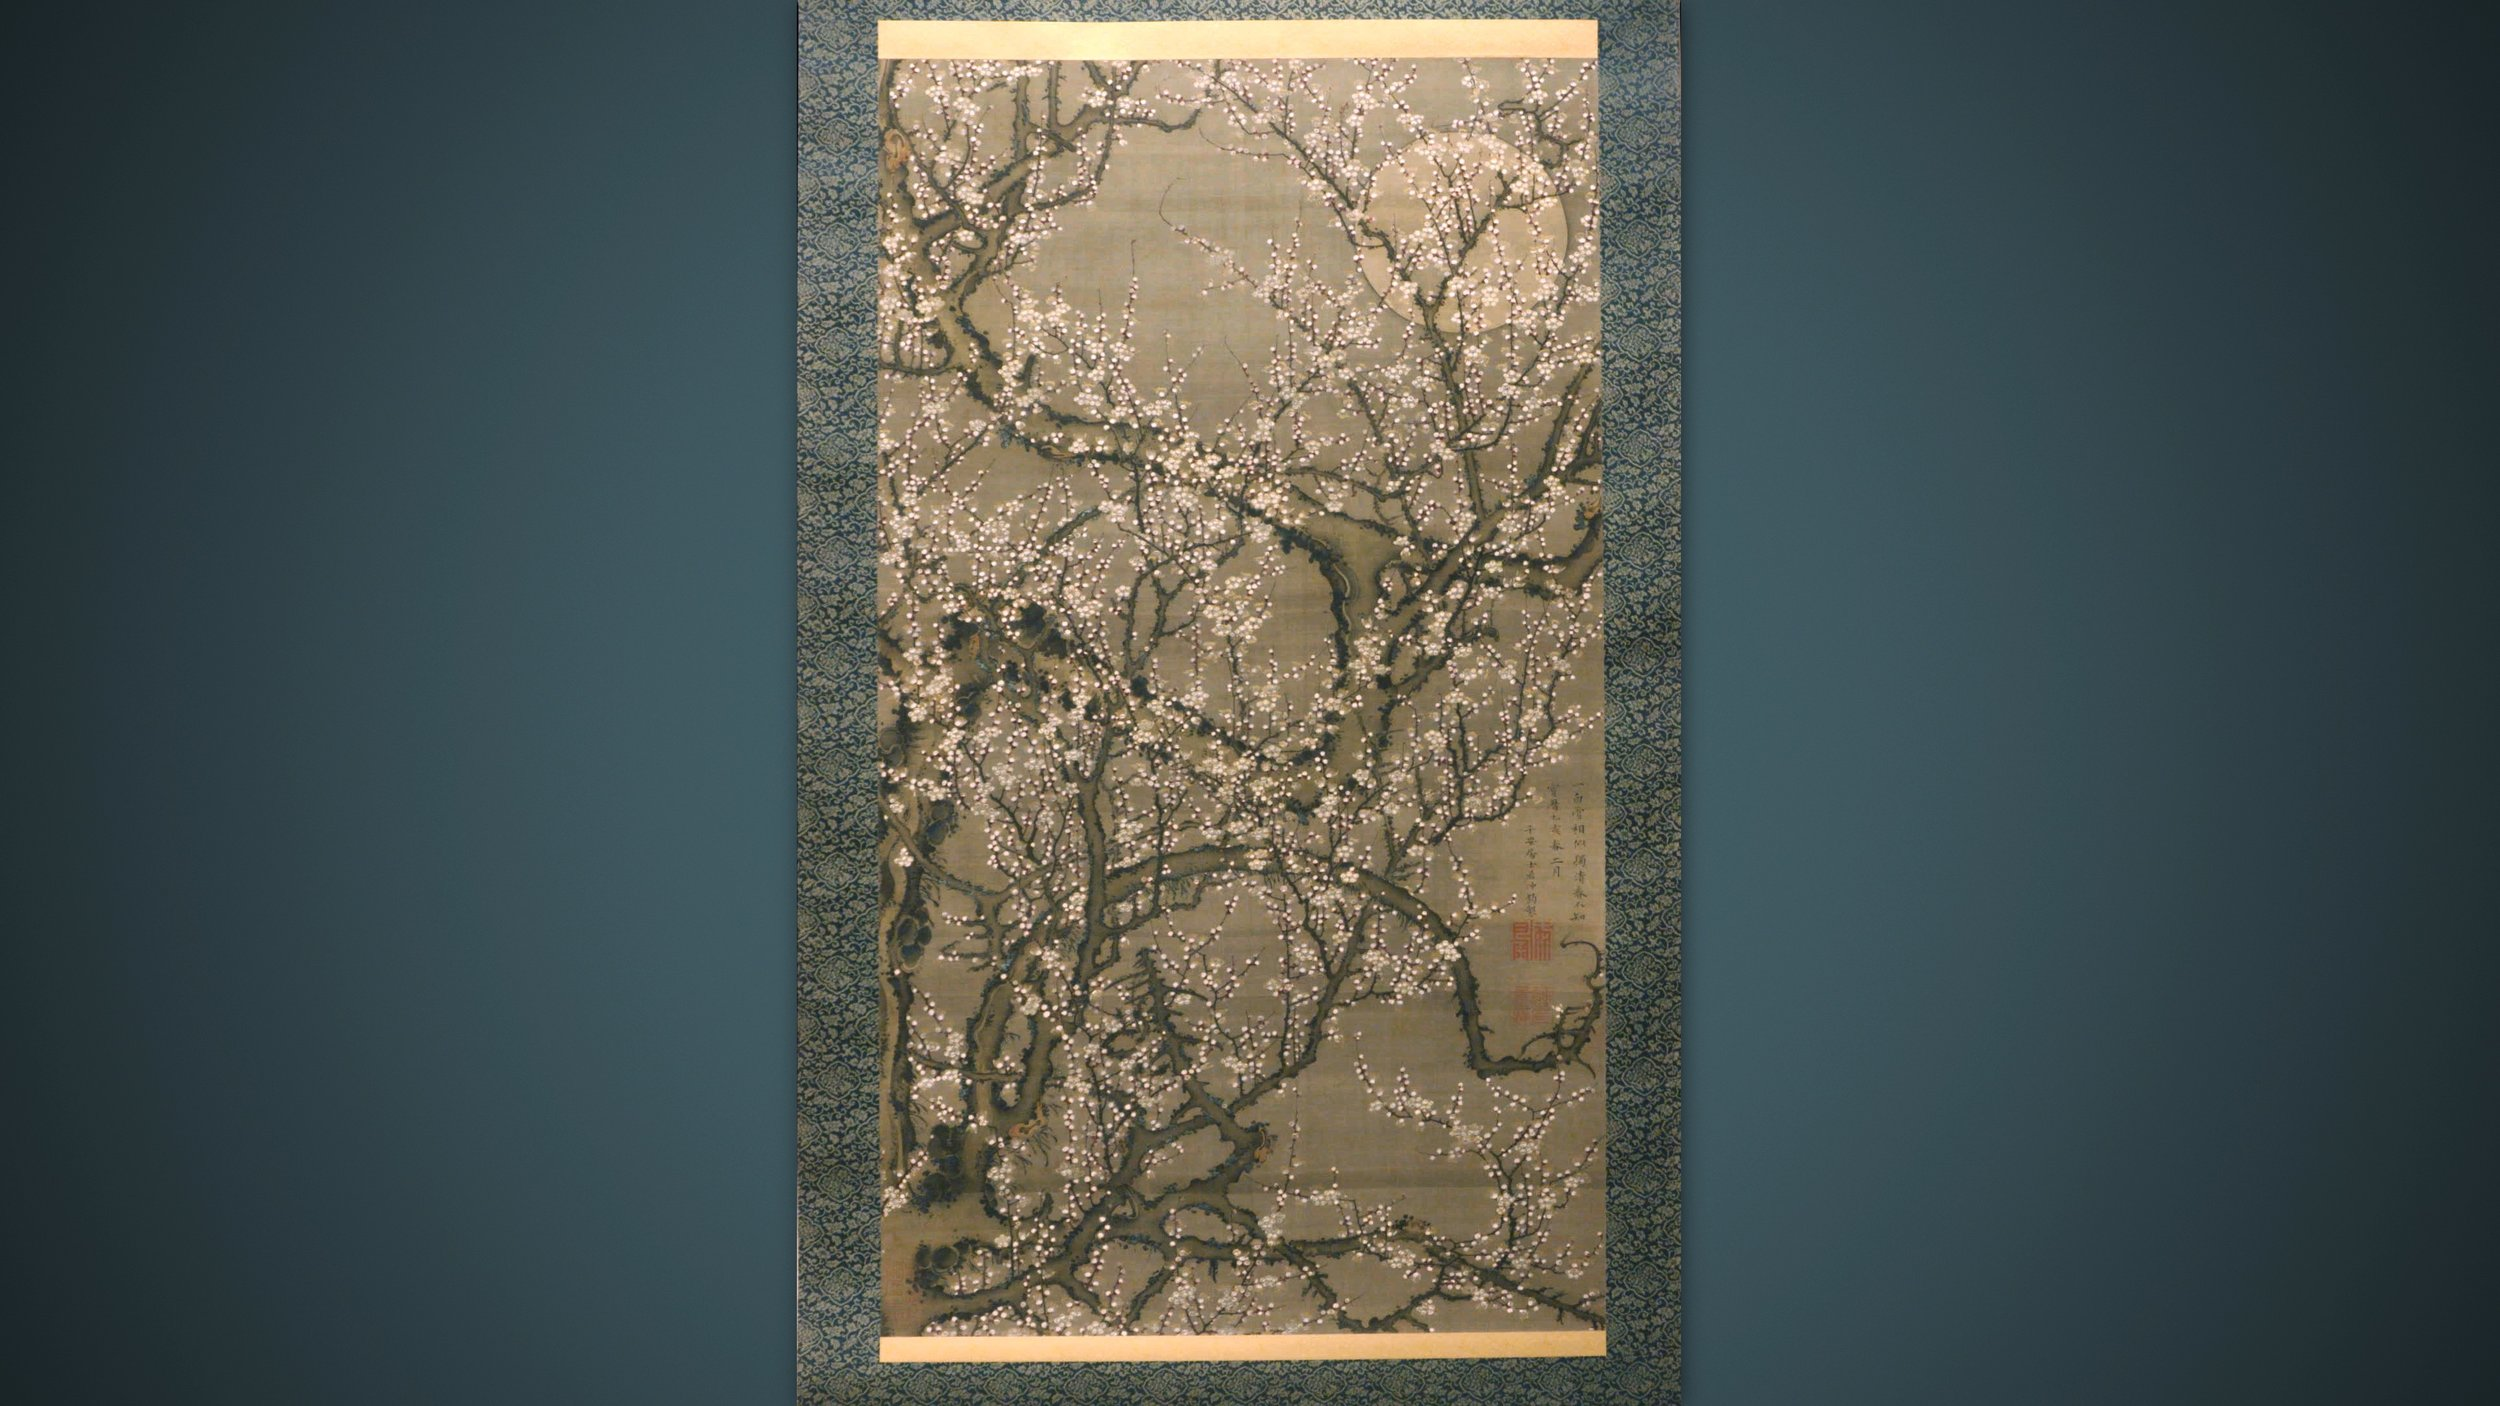 White Plum Blossoms and Moon   Metropolitan Museum of Art